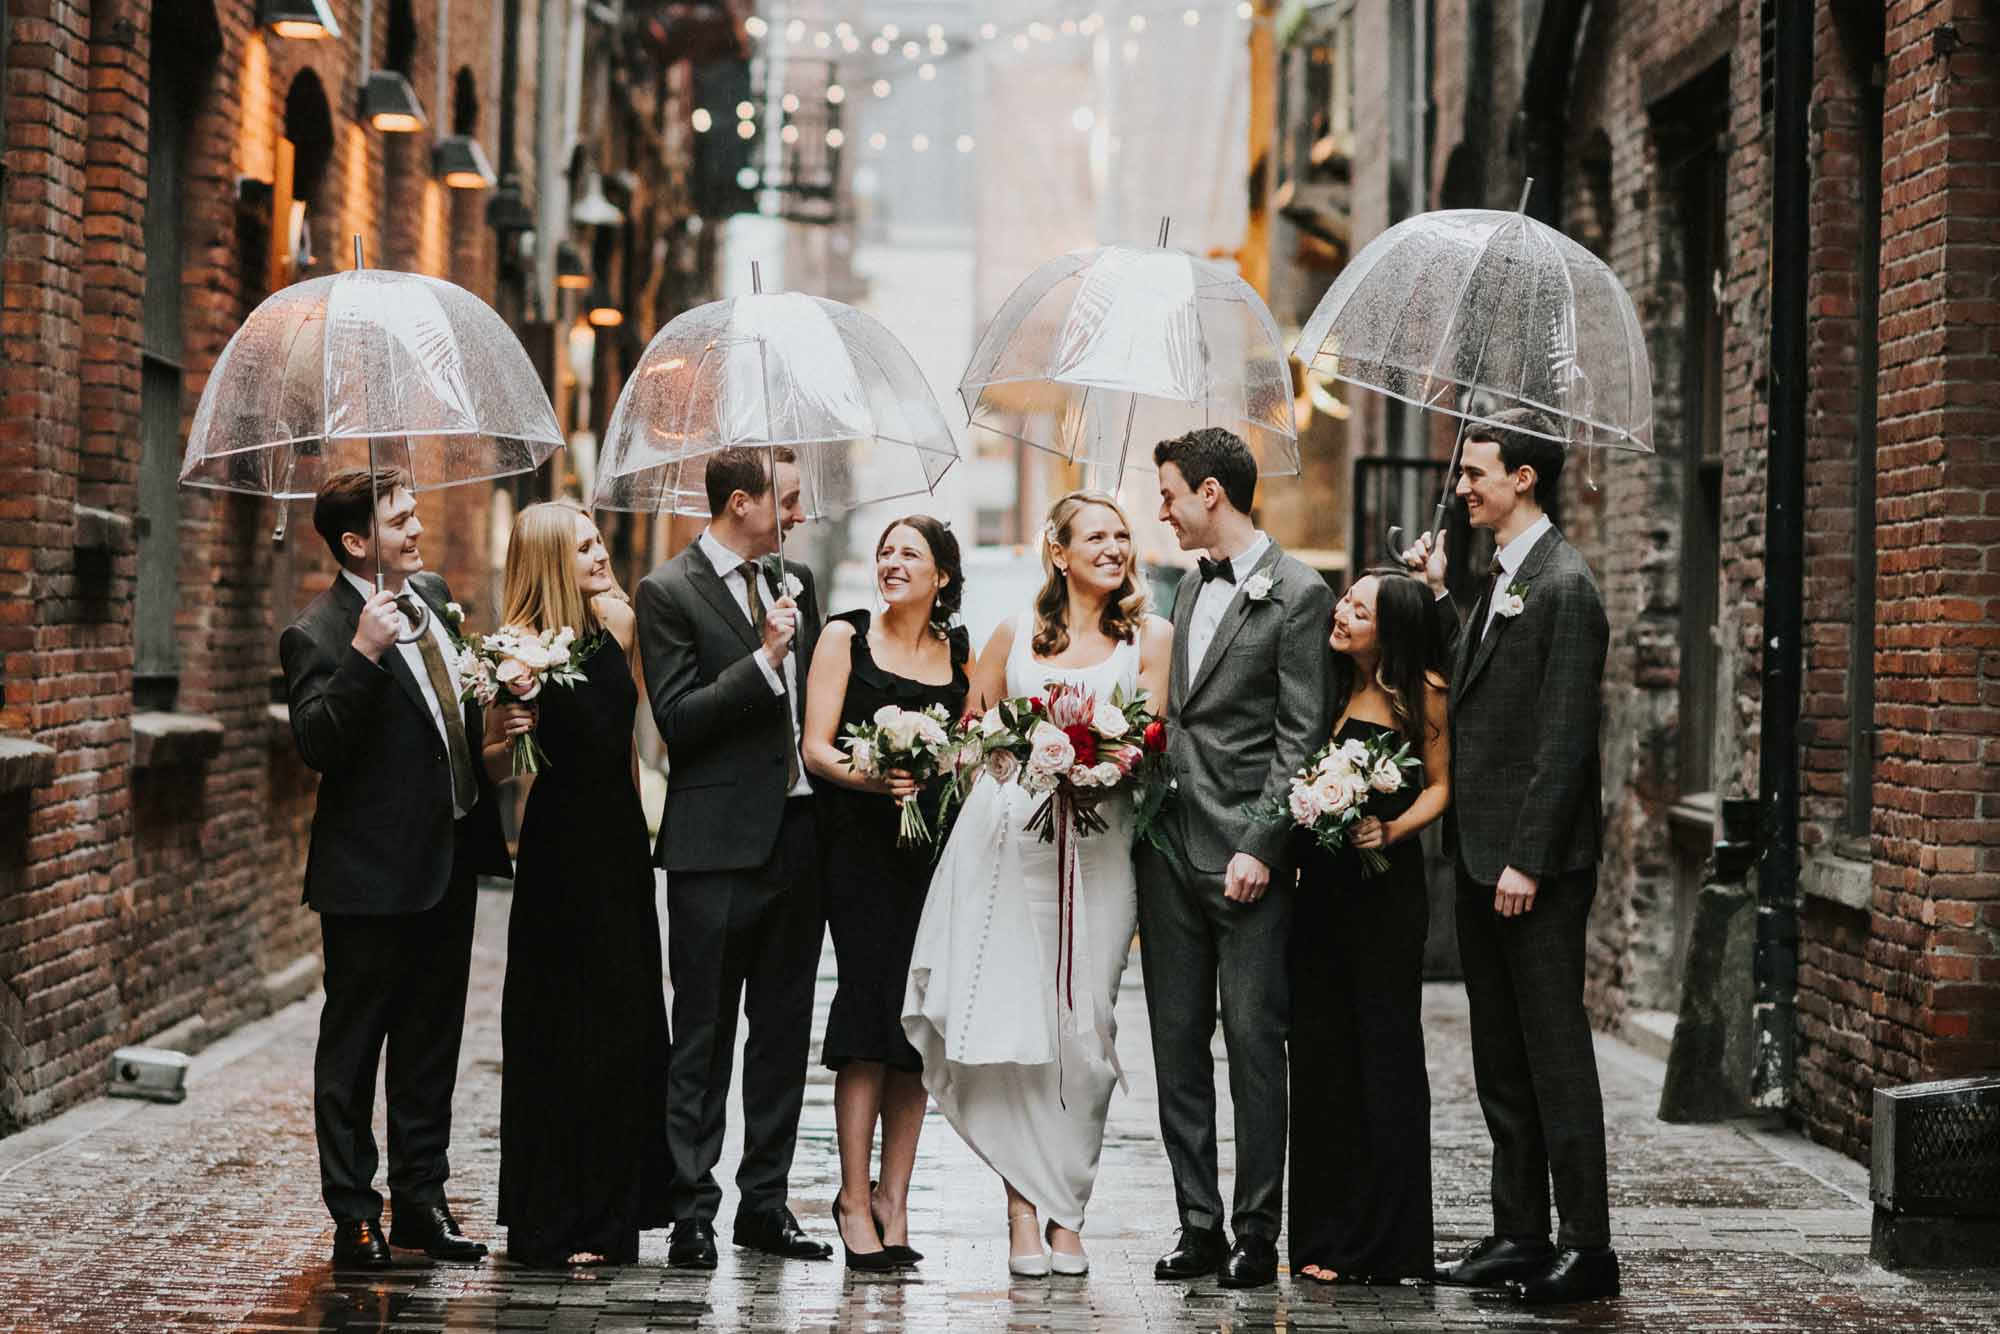 wedding party pose with umbrellas in brick alley